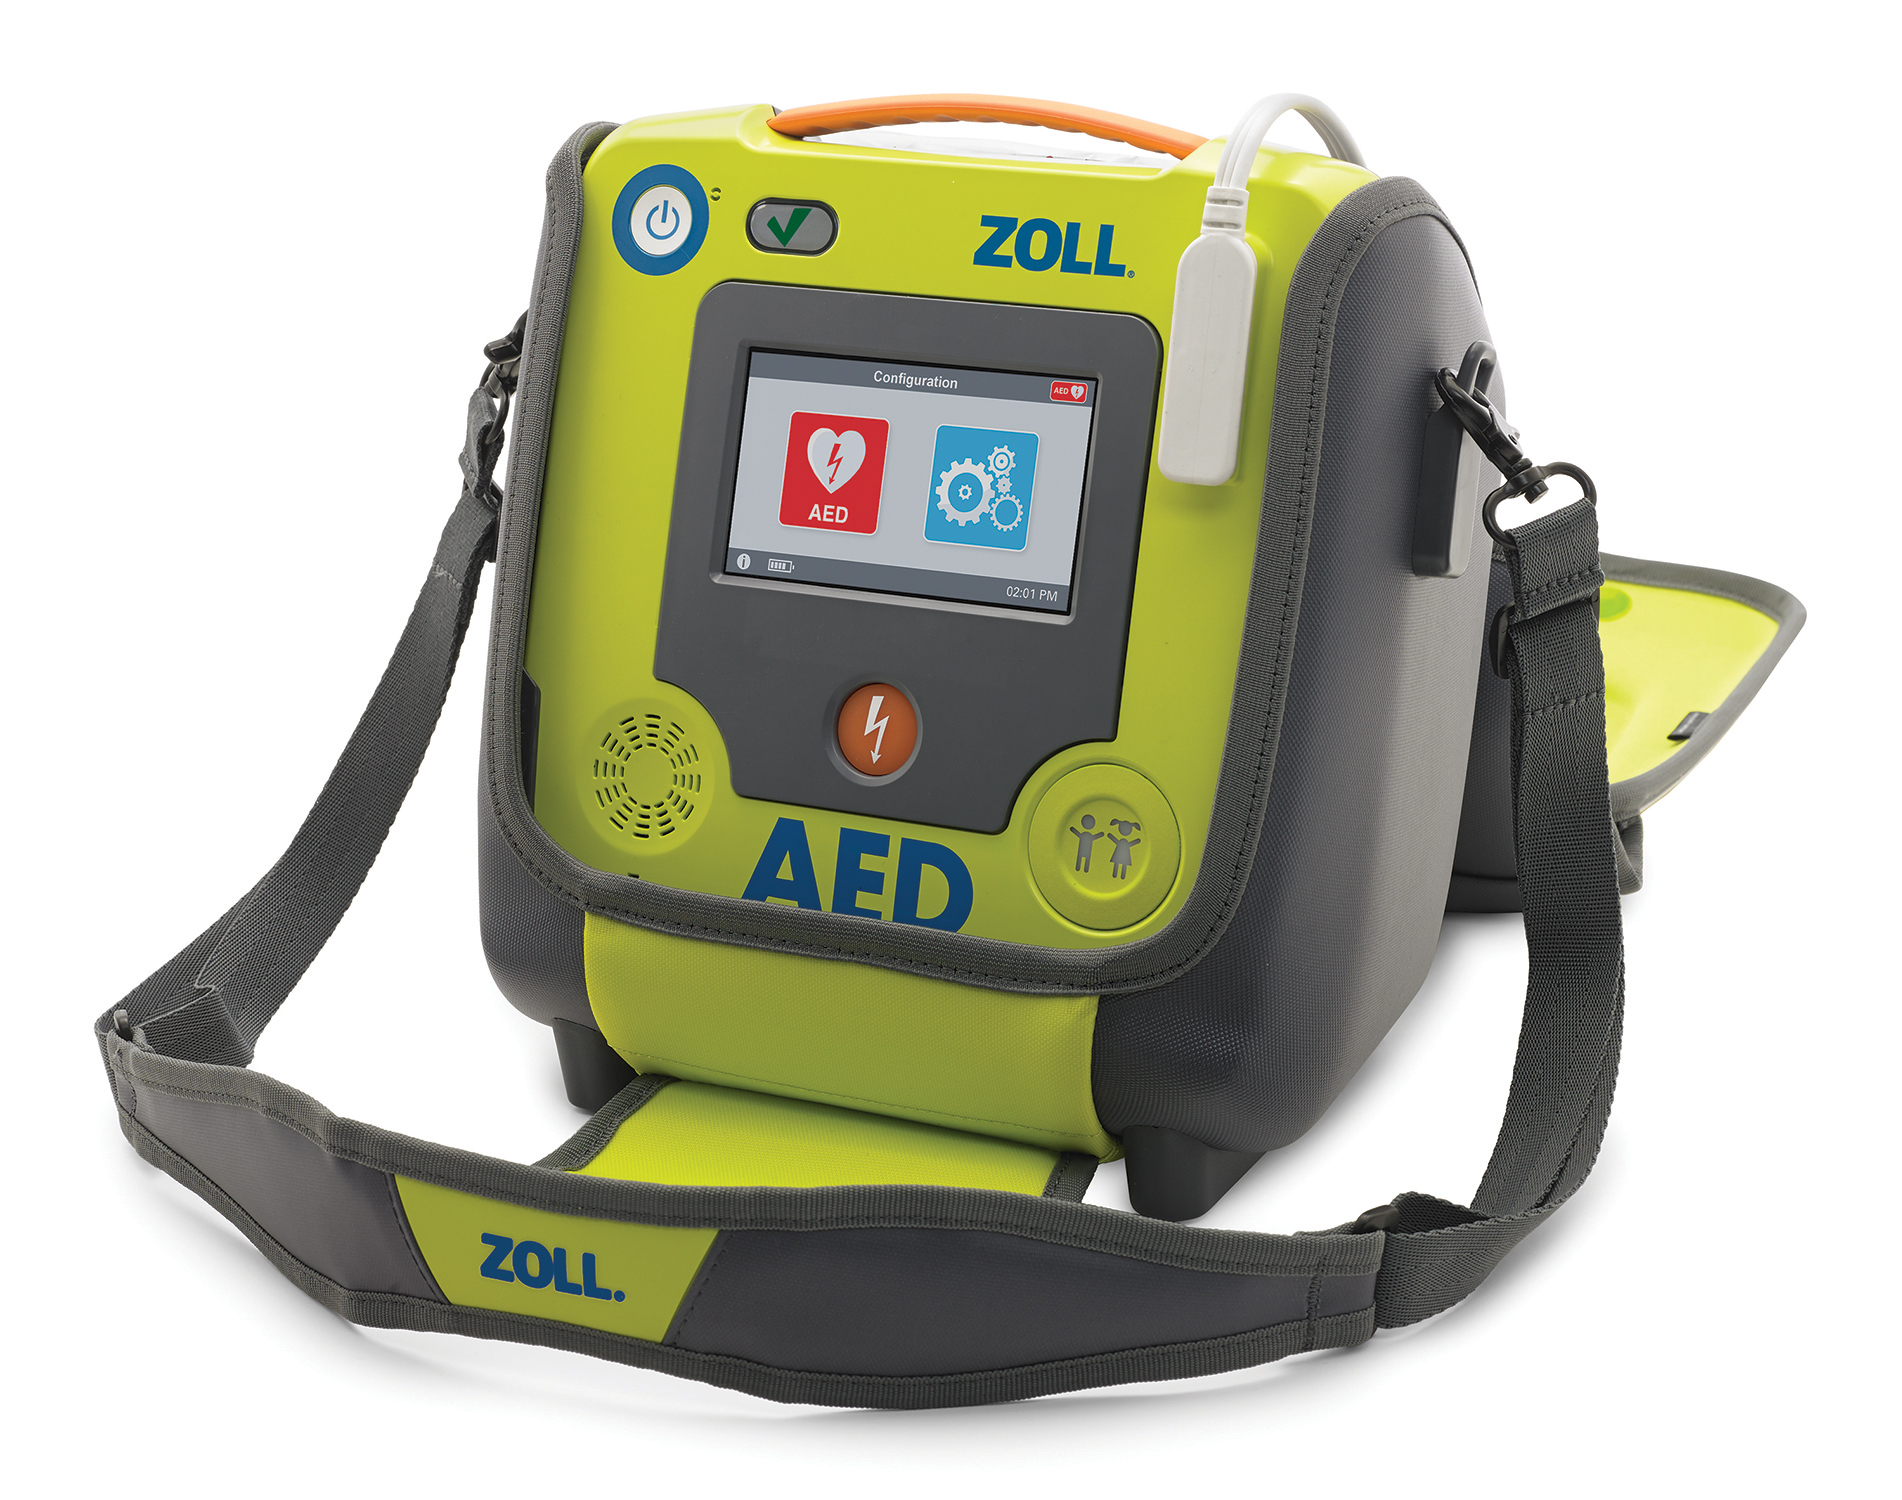 ZOLL TRANSPORT BAG FOR ZOLL AED 3